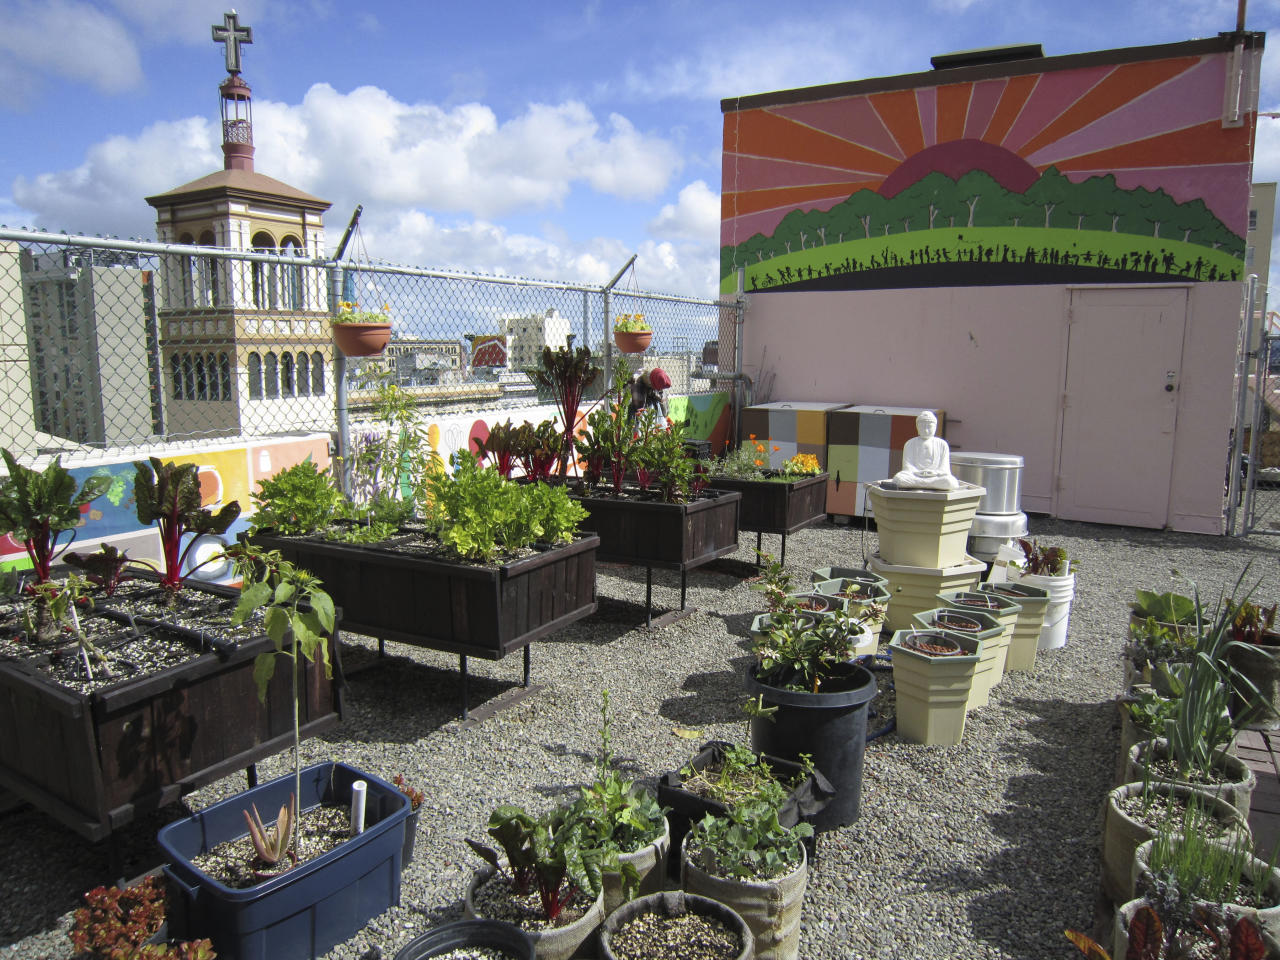 This undated photo courtesy of Joyce Sood for the GLIDE Foundation shows the rooftop garden at the Glide Memorial Church in San Francisco. As more people turn to roof gardens to grow their own food, they are coming up with all kinds of ways to keep those gardens light and avoid sagging and cave-ins.